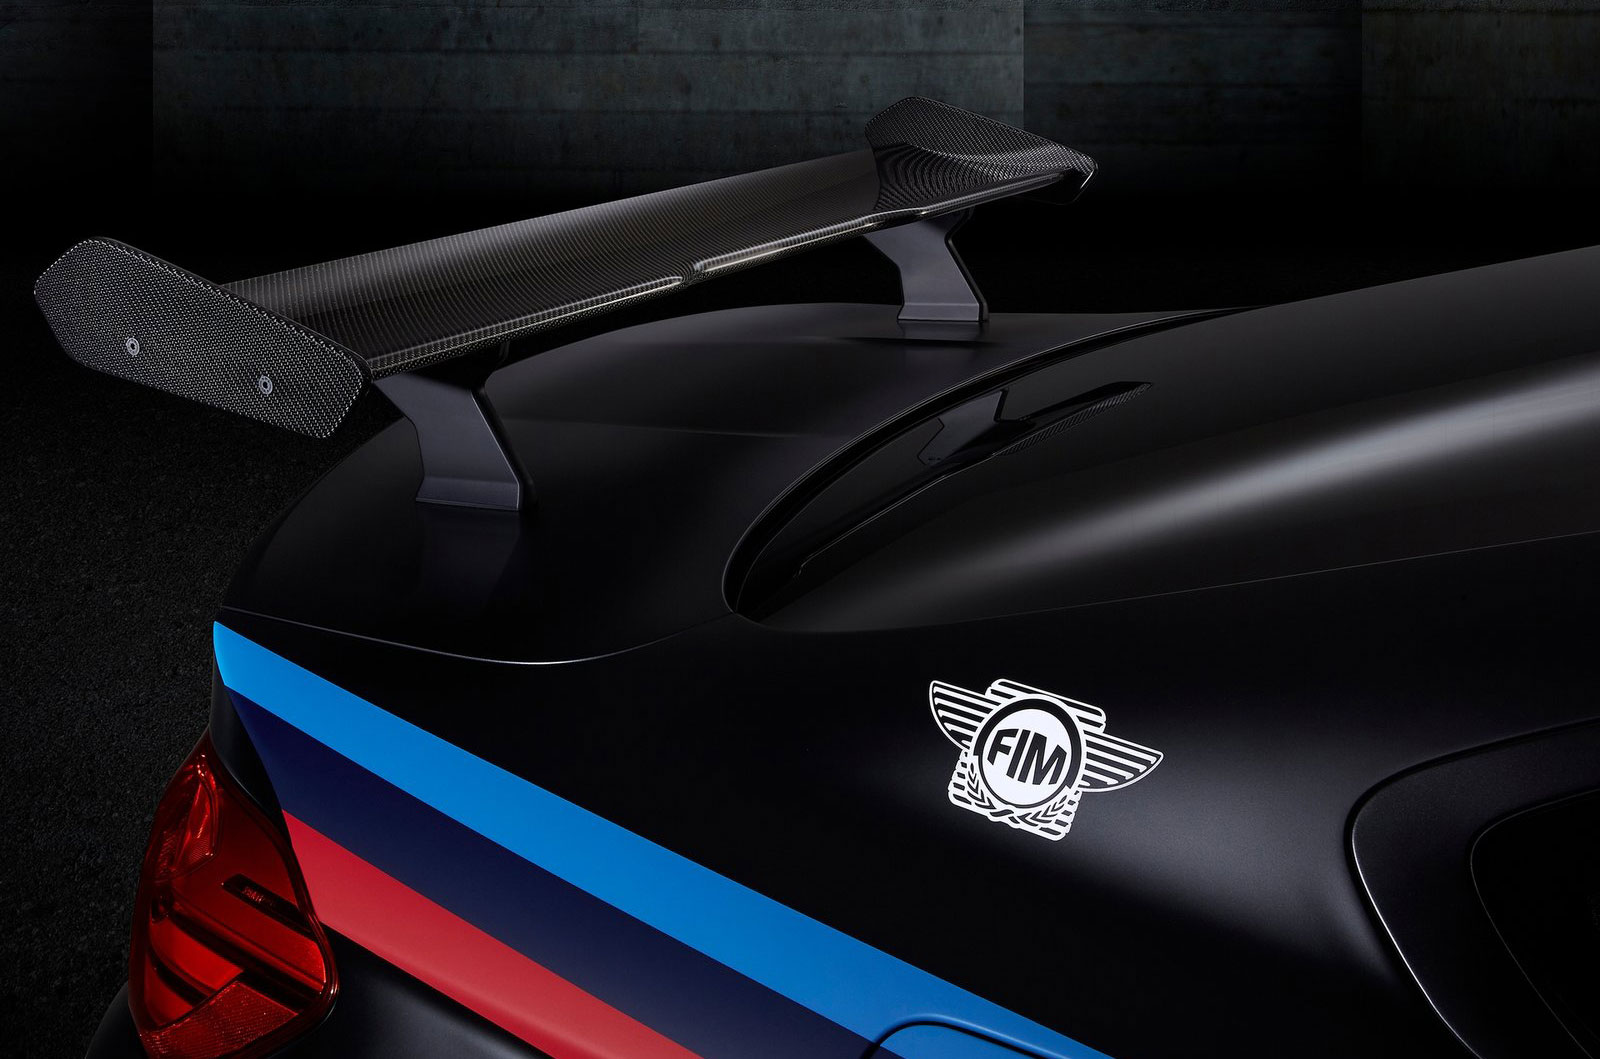 New Bmw Car >> BMW M4 2015 MotoGP Safety Car tests new water injection system – to debut in an M car soon Paul ...